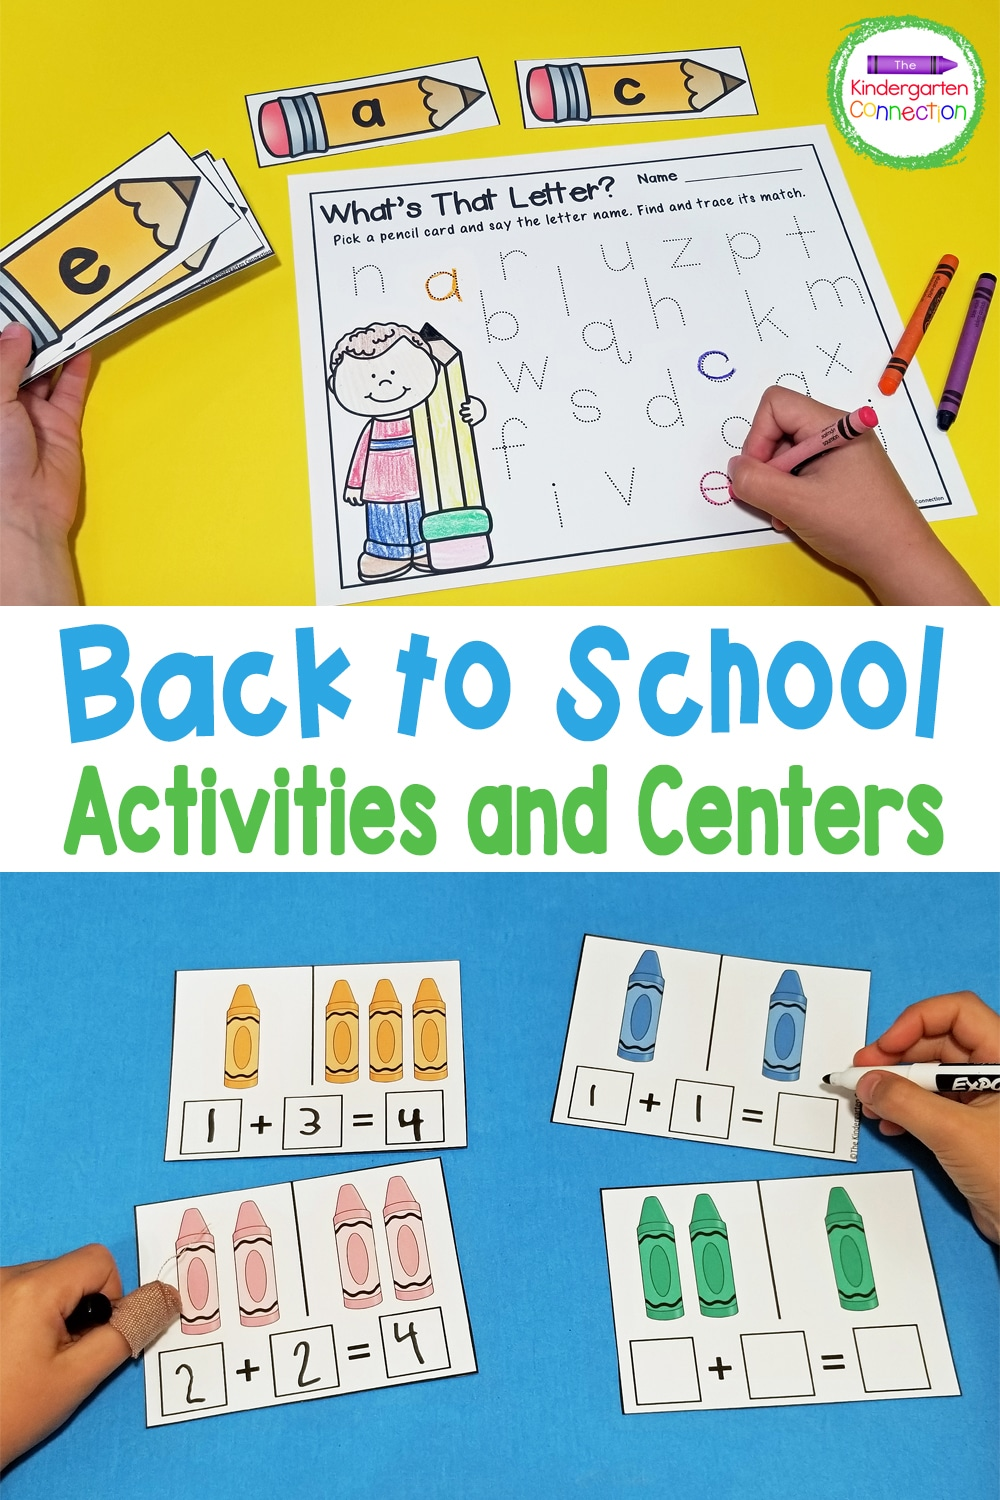 These Back to School Activities and Centers for Pre-K & Kindergarten are ready to print and play, saving you tons of stress and prep time!